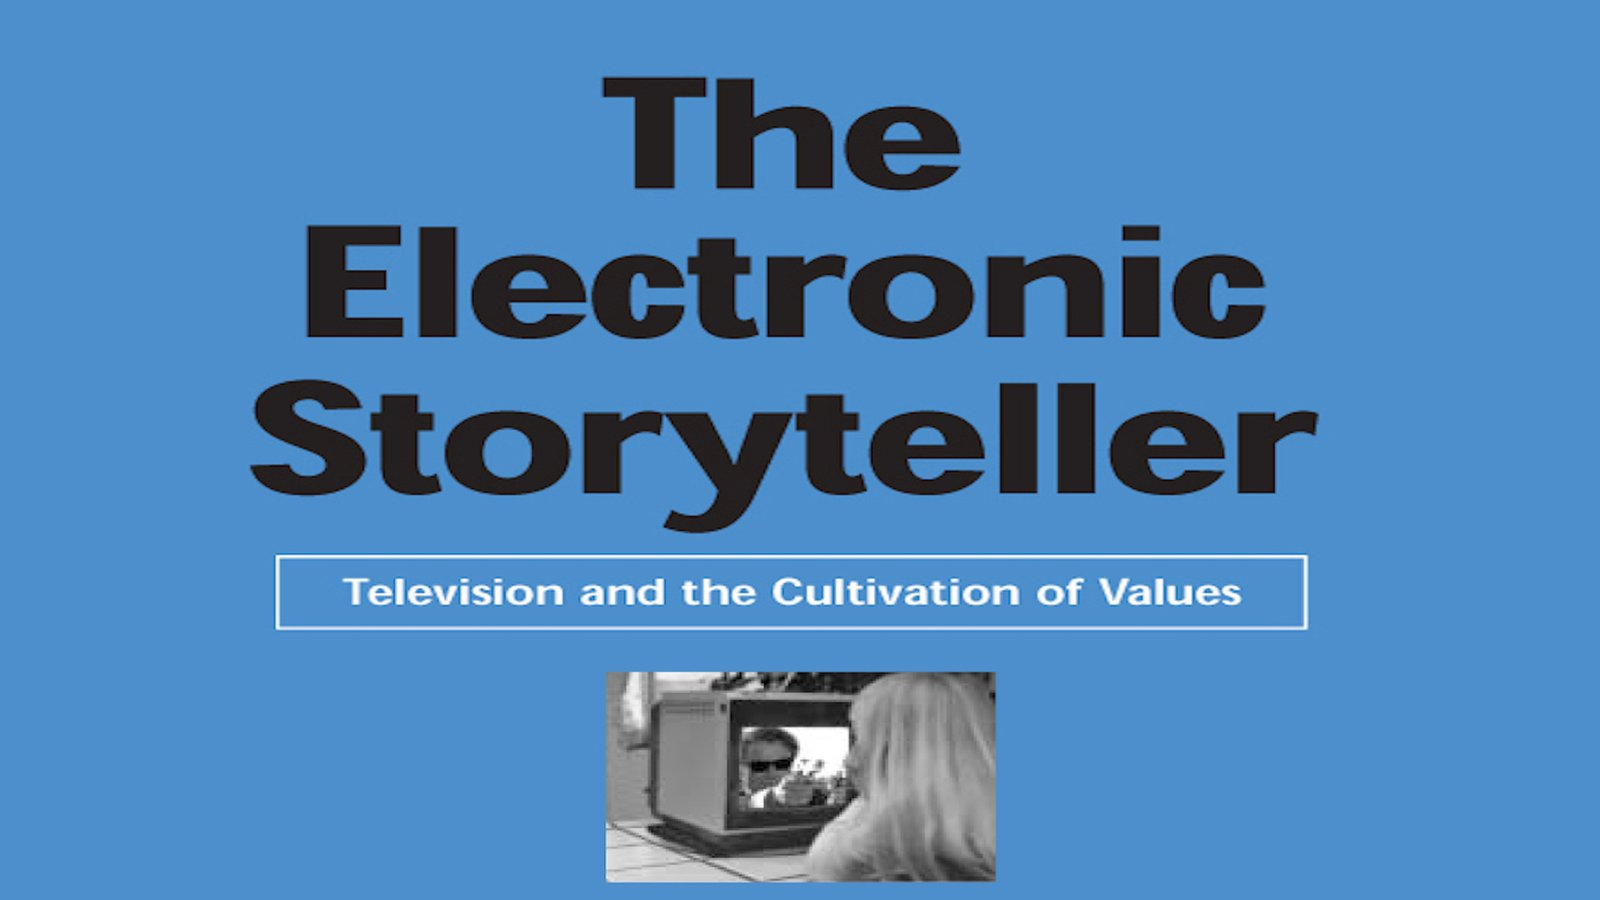 The Electronic Storyteller - Television & The Cultivation of Values